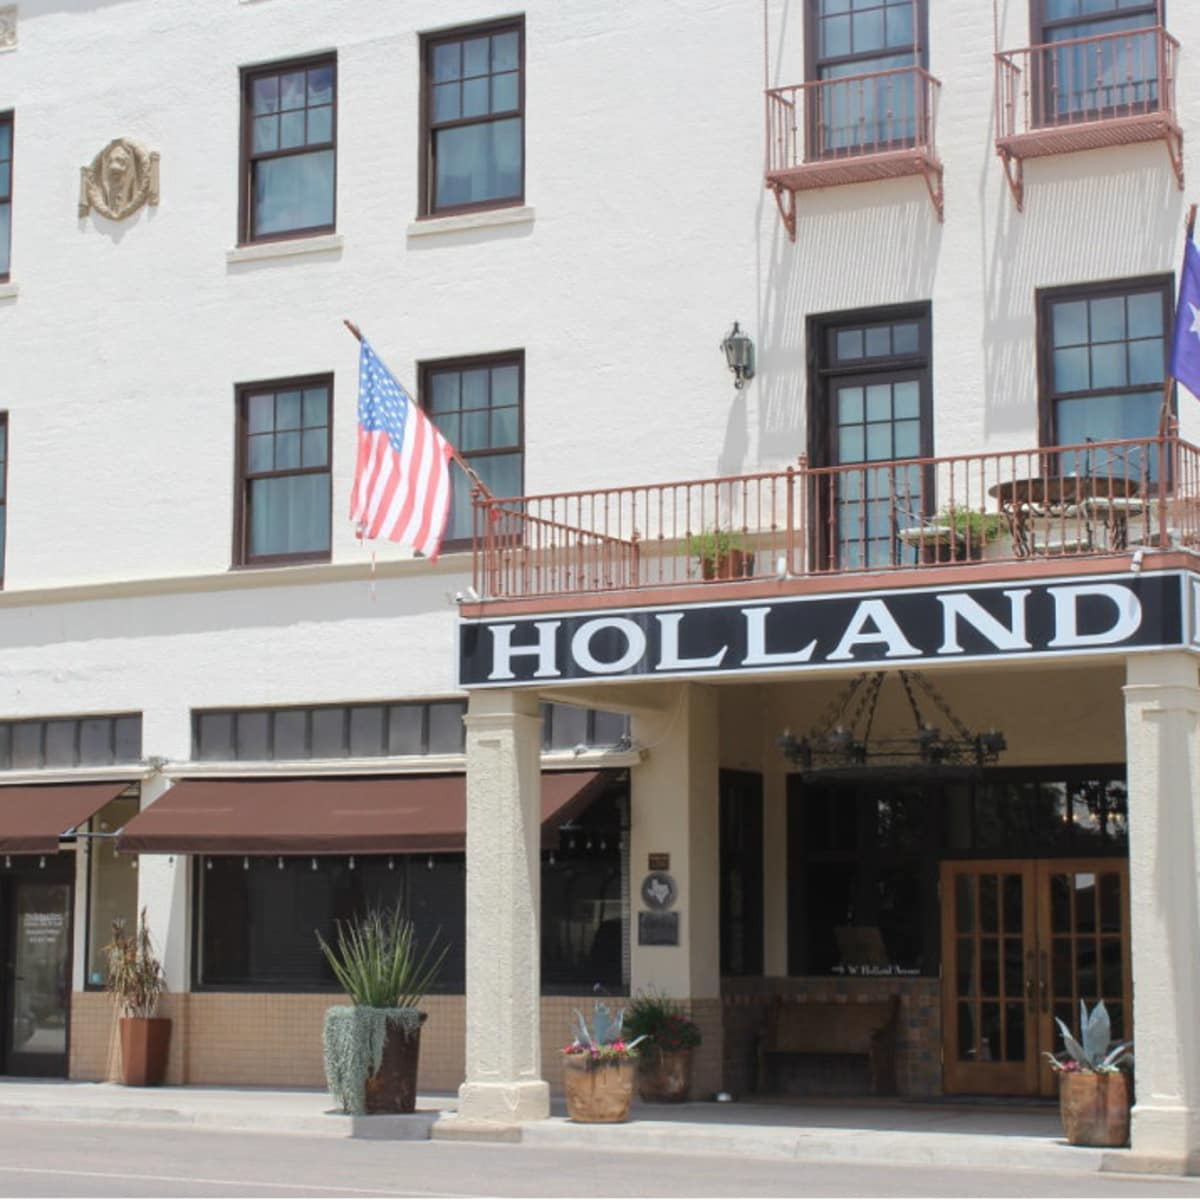 The historic Holland Hotel in Alpine